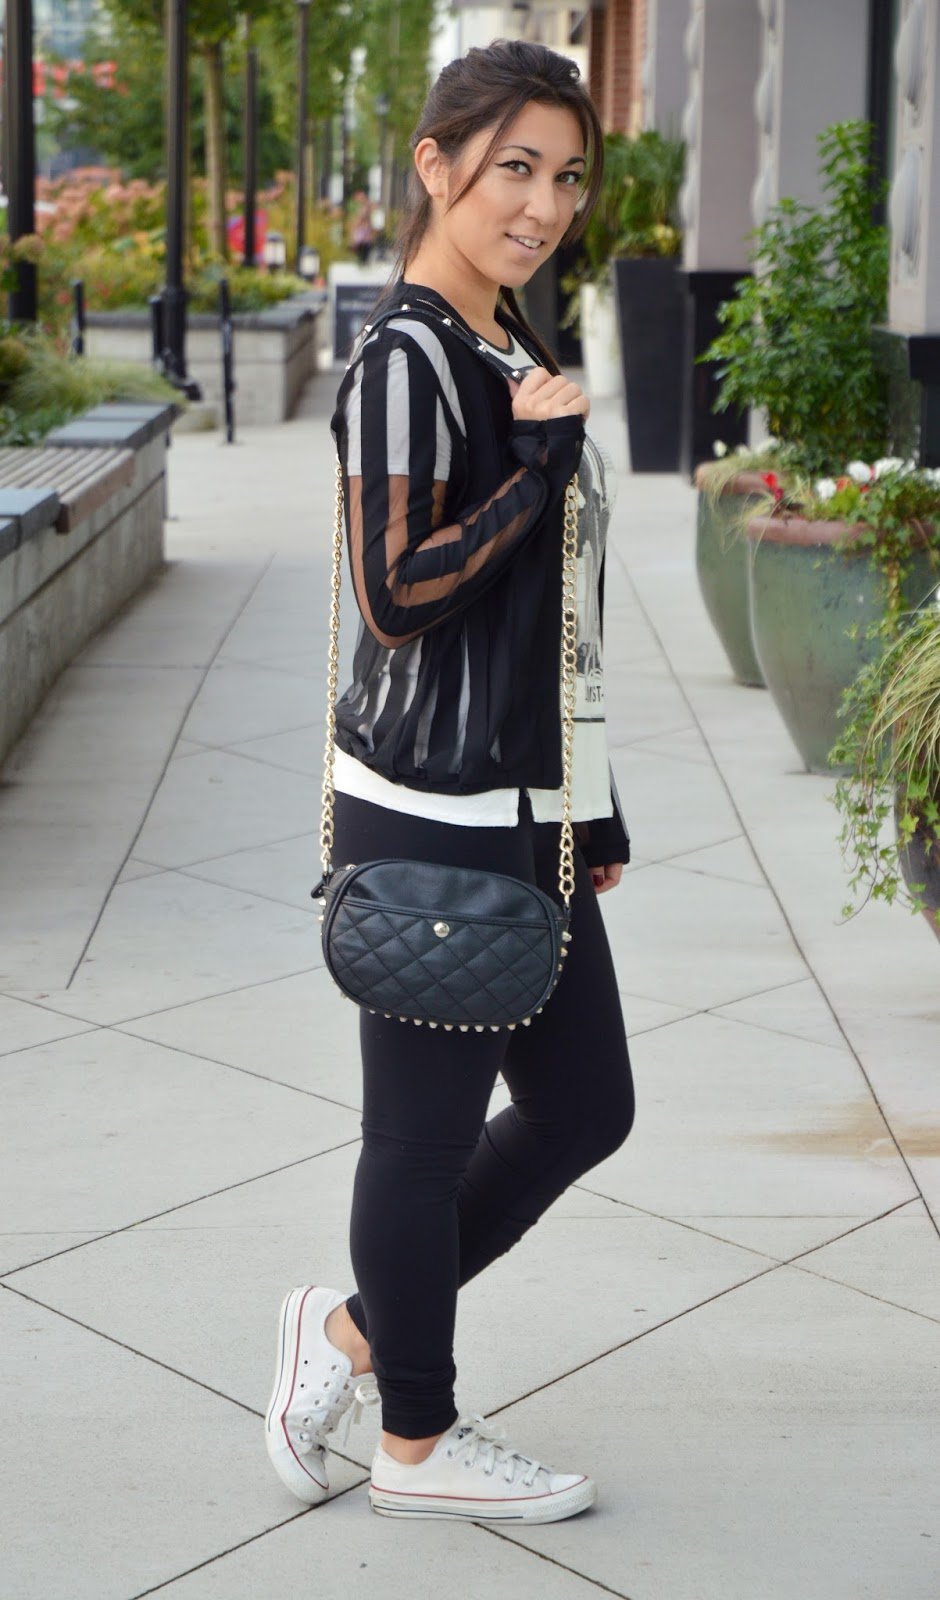 ootd: outfit for shopping wearing lululemon, growzela mesh top and zara graphic T